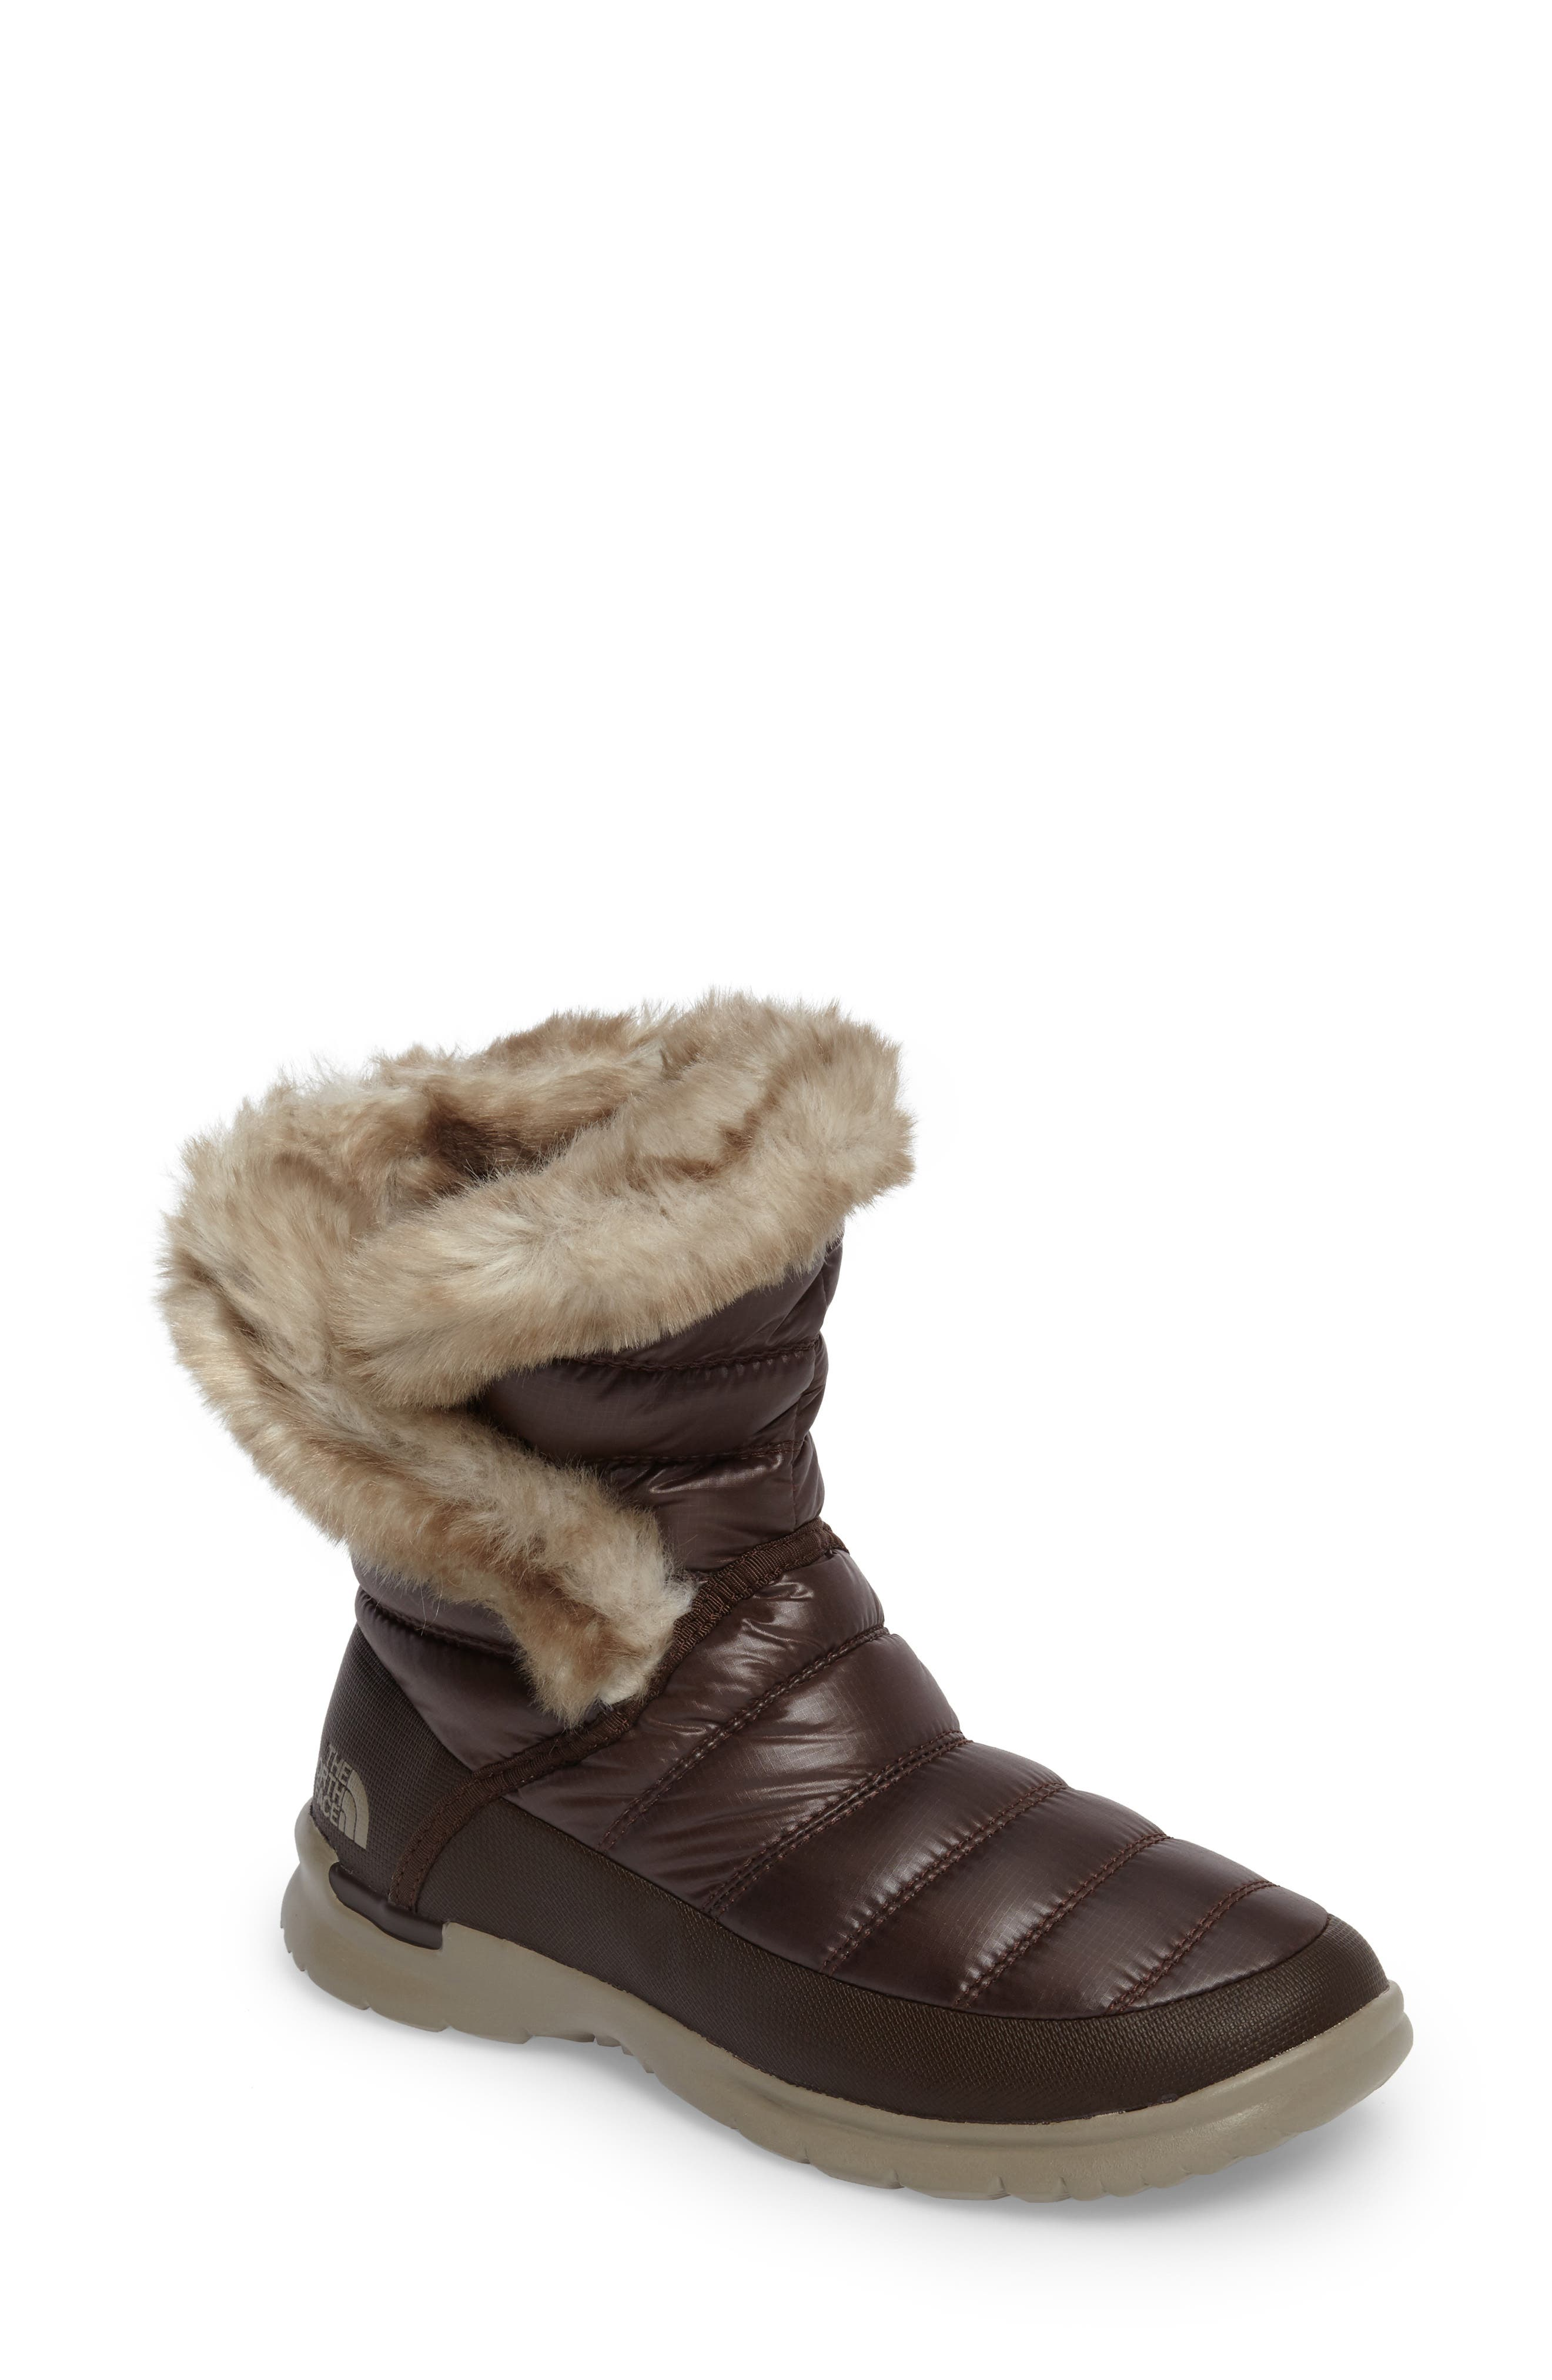 Alternate Image 1 Selected - The North Face Microbaffle Waterproof ThermoBall™ Insulated Winter Boot (Women)